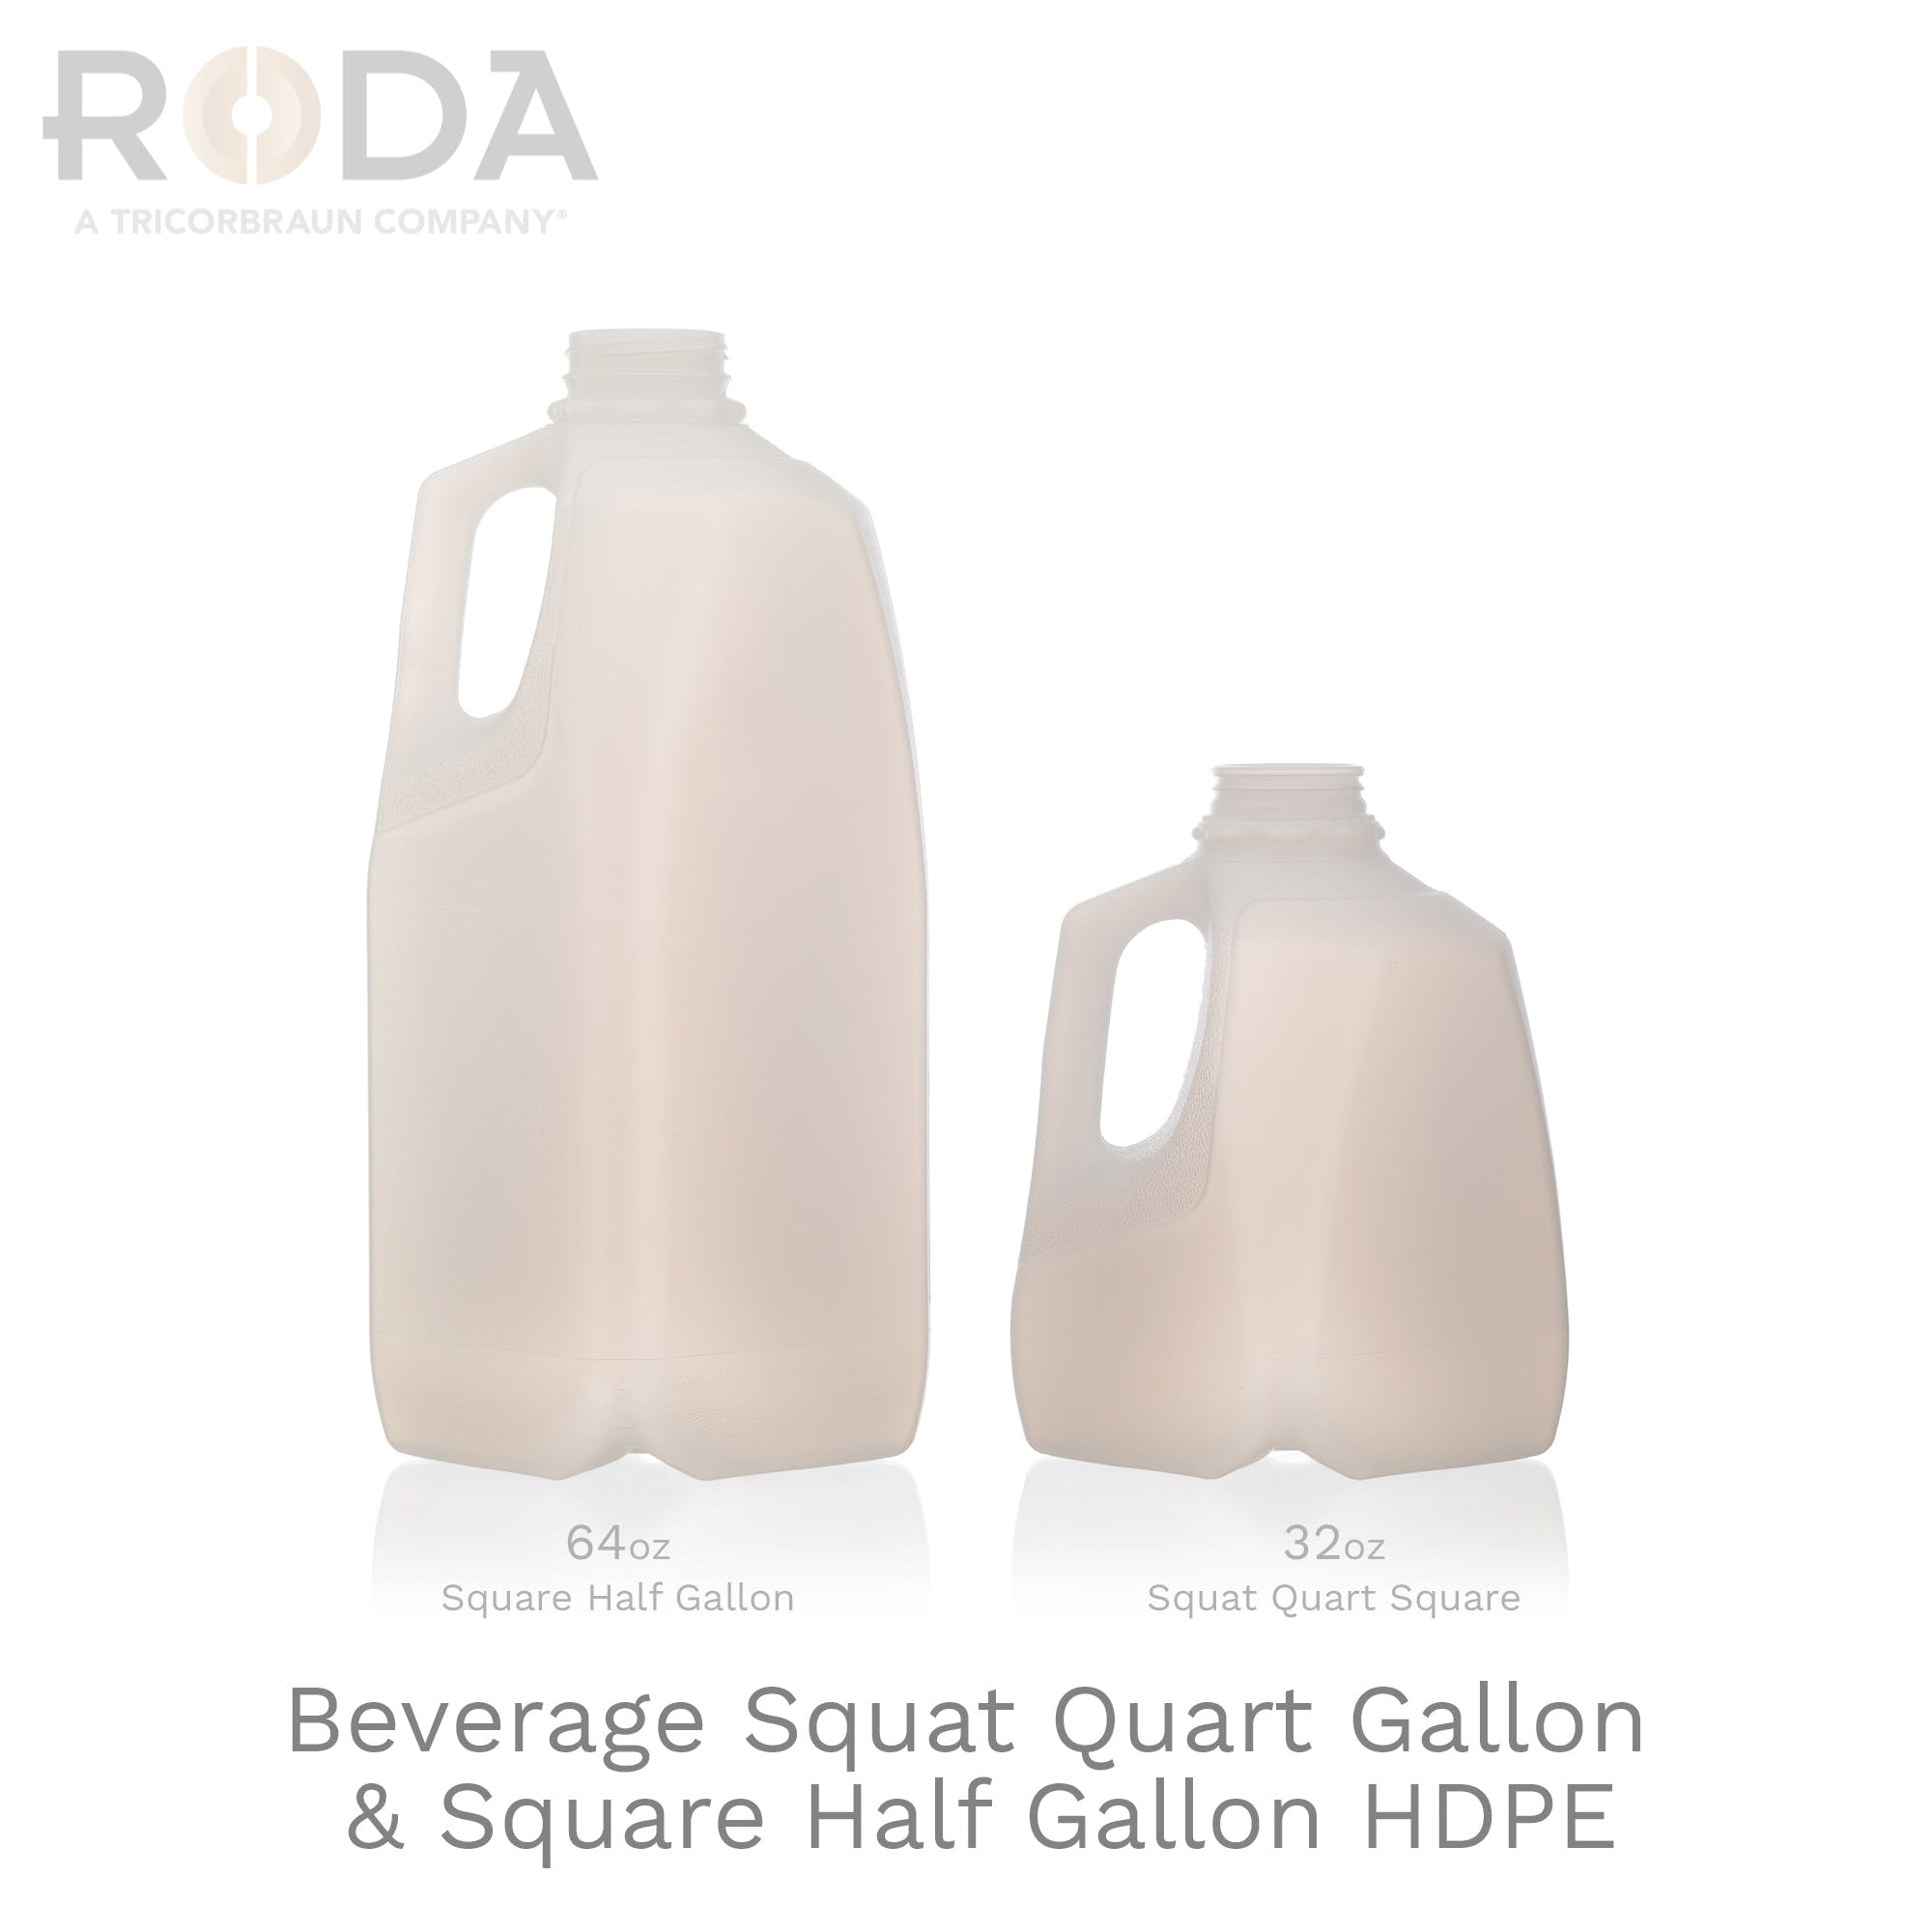 Beverage Squat Quart Gallon & Square Half Gallon HDPE